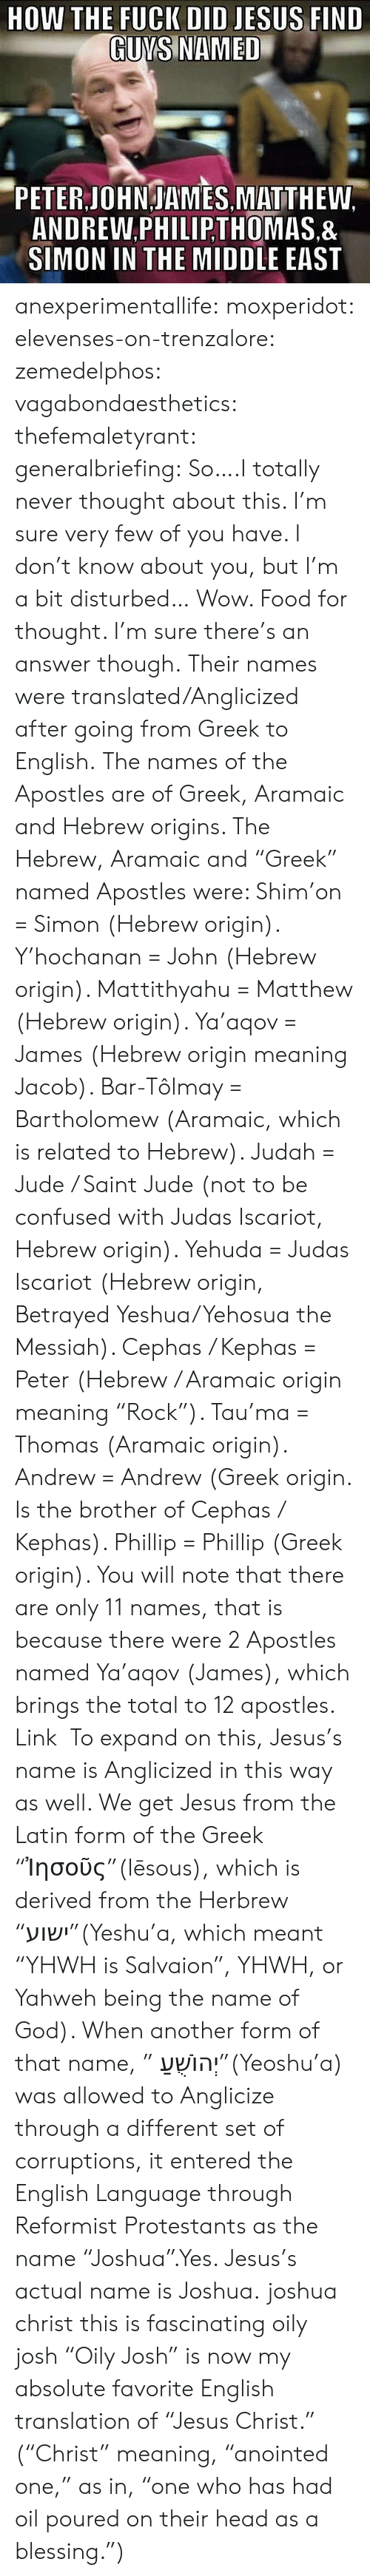 "Apostles: DID JESUS FIND  GUNS NAMED  PETER JOHNJAMES MATTHEW.  ANDREW.PHILIP,THOMAS.&  SIMON IN THE MIDDLE EAST anexperimentallife:  moxperidot:  elevenses-on-trenzalore:  zemedelphos:  vagabondaesthetics:  thefemaletyrant:  generalbriefing:  So….I totally never thought about this. I'm sure very few of you have. I don't know about you, but I'm a bit disturbed…  Wow. Food for thought. I'm sure there's an answer though.  Their names were translated/Anglicized after going from Greek to English. The names of the Apostles are of Greek, Aramaic and Hebrew origins. The Hebrew, Aramaic and ""Greek"" named Apostles were:  Shim'on = Simon (Hebrew origin).  Y'hochanan = John (Hebrew origin).  Mattithyahu = Matthew (Hebrew origin).  Ya'aqov = James (Hebrew origin meaning Jacob).  Bar-Tôlmay = Bartholomew (Aramaic, which is related to Hebrew).  Judah = Jude / Saint Jude (not to be confused with Judas Iscariot, Hebrew origin).  Yehuda = Judas Iscariot (Hebrew origin, Betrayed Yeshua/Yehosua the Messiah).  Cephas / Kephas = Peter (Hebrew / Aramaic origin meaning ""Rock"").  Tau'ma = Thomas (Aramaic origin).  Andrew = Andrew (Greek origin. Is the brother of Cephas / Kephas).  Phillip = Phillip (Greek origin).  You will note that there are only 11 names, that is because there were 2 Apostles named Ya'aqov (James), which brings the total to 12 apostles. Link   To expand on this, Jesus's name is Anglicized in this way as well. We get Jesus from the Latin form of the Greek ""Ἰησοῦς""(Iēsous), which is derived from the Herbrew ""ישוע""(Yeshu'a, which meant ""YHWH is Salvaion"", YHWH, or Yahweh being the name of God). When another form of that name, "" יְהוֹשֻׁעַ""(Yeoshu'a) was allowed to Anglicize through a different set of corruptions, it entered the English Language through Reformist Protestants as the name ""Joshua"".Yes. Jesus's actual name is Joshua.  joshua christ this is fascinating   oily josh  ""Oily Josh"" is now my absolute favorite English translation of ""Jesus Christ."" (""Christ"" meaning, ""anointed one,"" as in, ""one who has had oil poured on their head as a blessing."")"